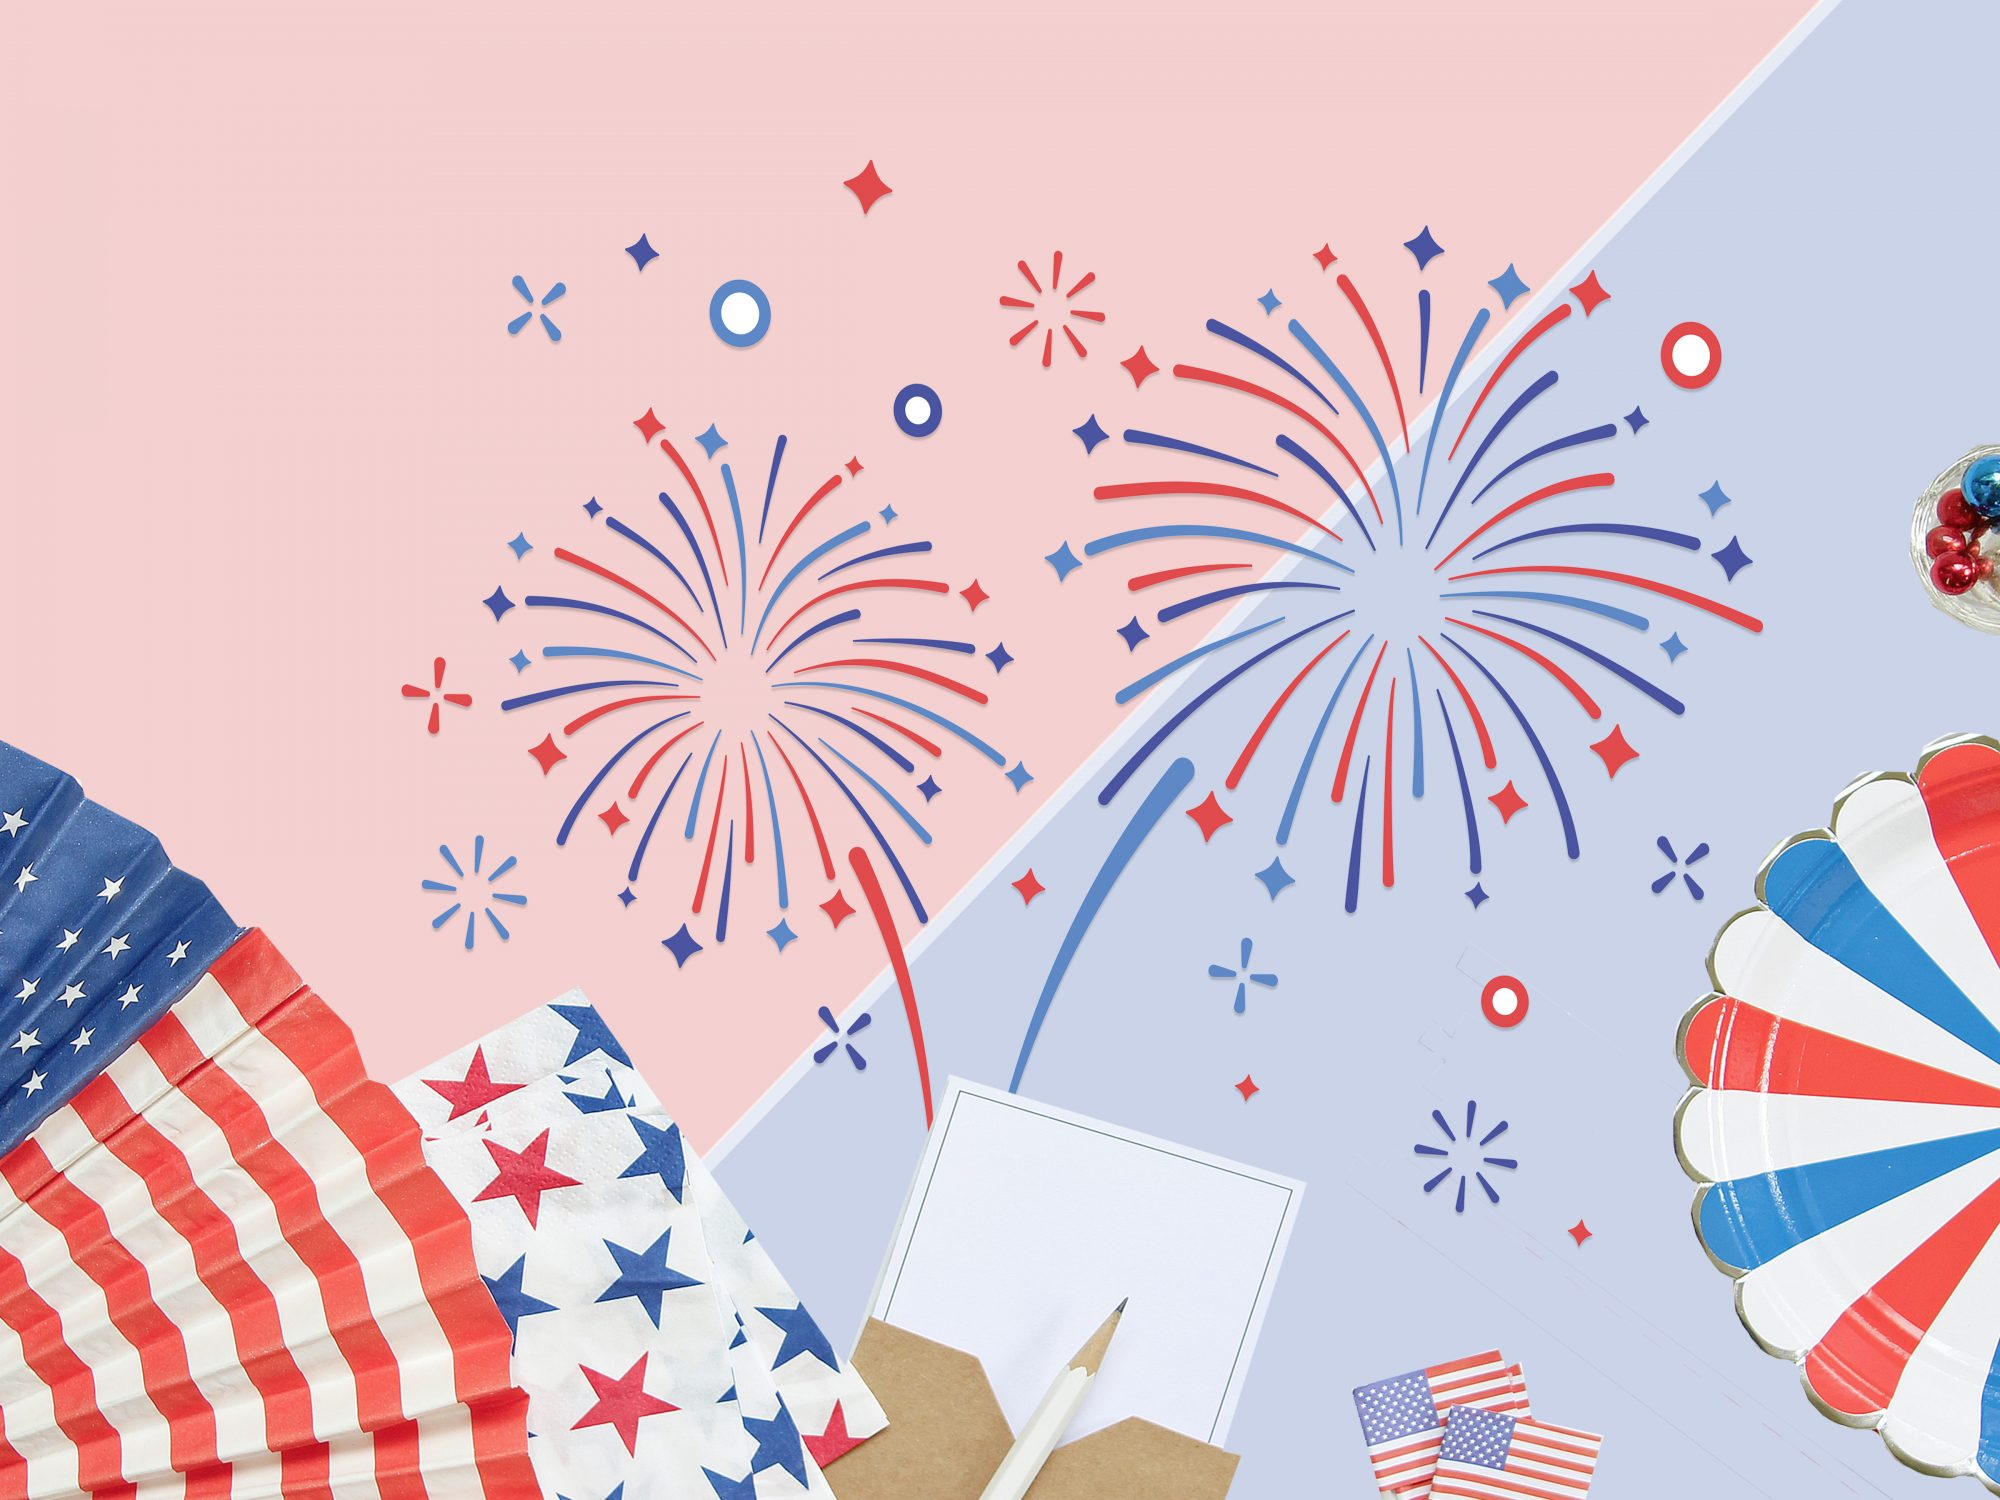 27 Patriotic Fourth of July Quotes to Celebrate Independence Day